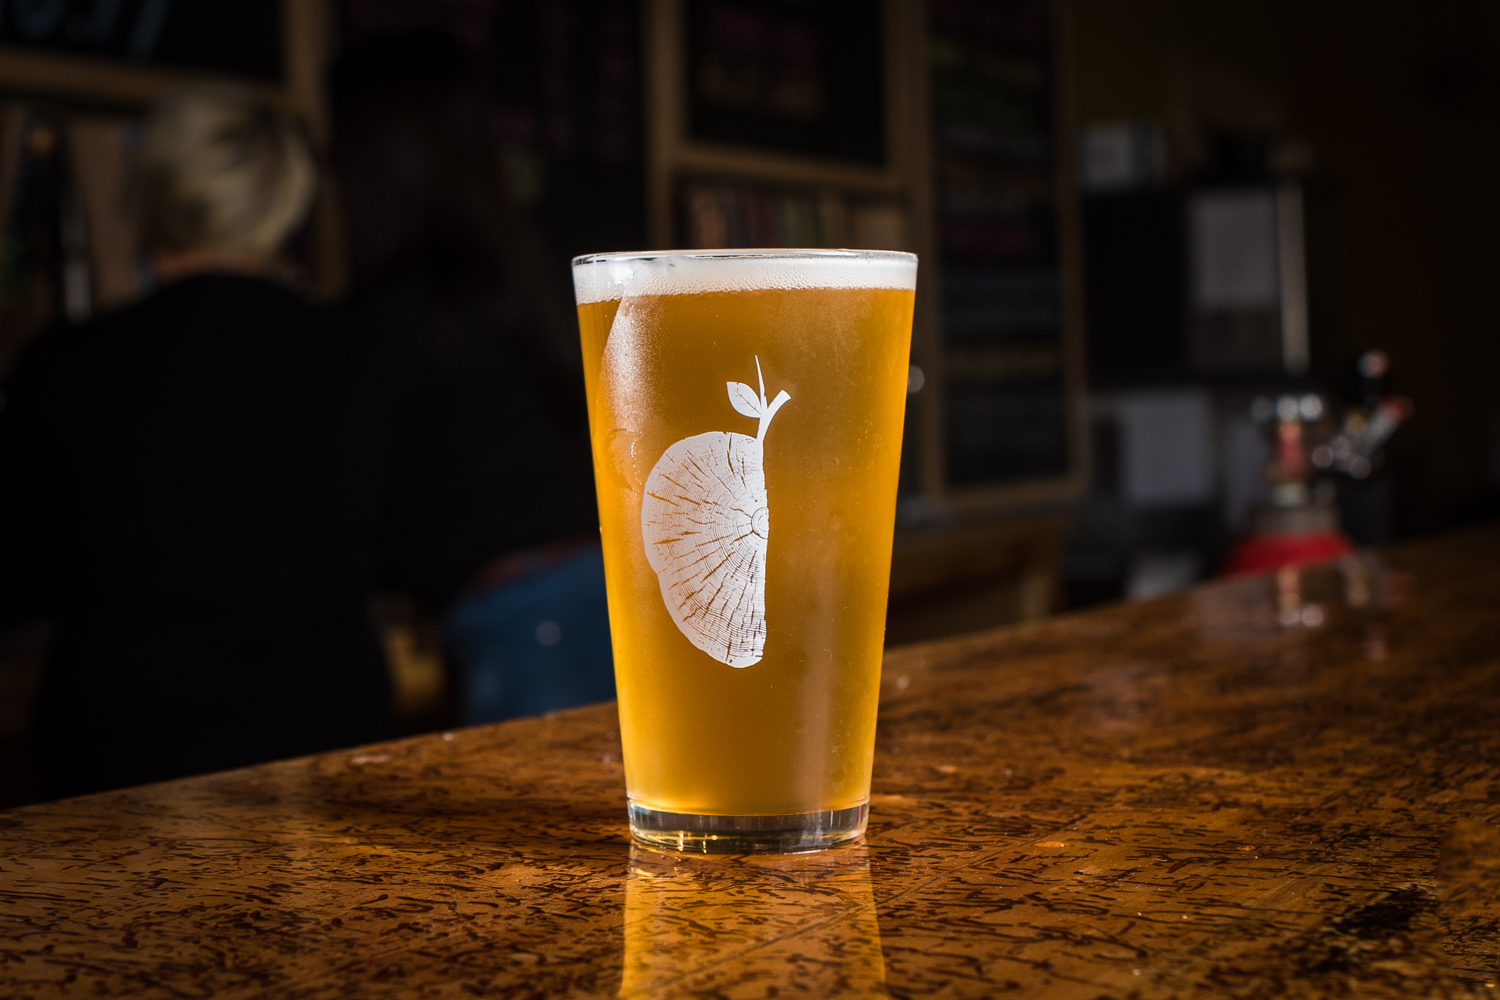 rustic woodcut apple logo for a brewery on a pint glass of beer